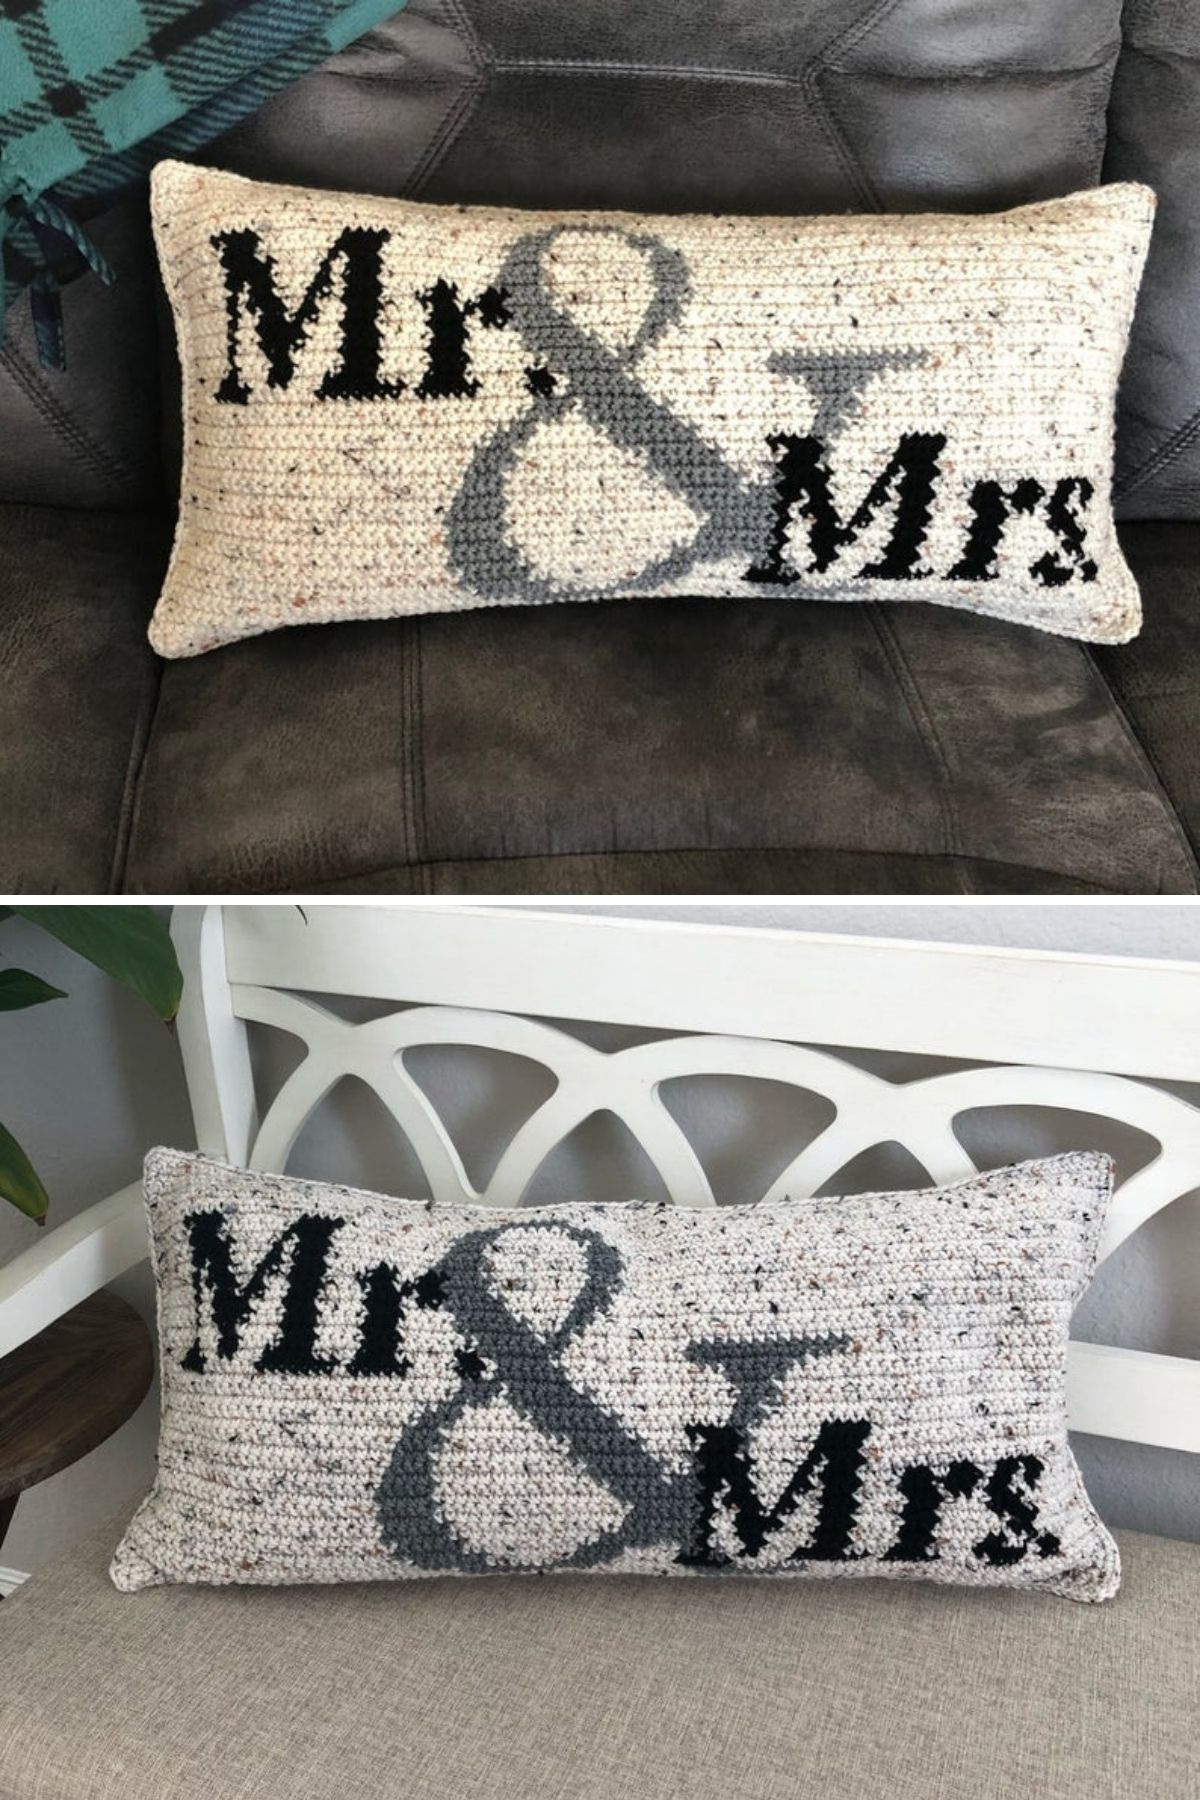 Crochet white and black mr. and mrs. pillow